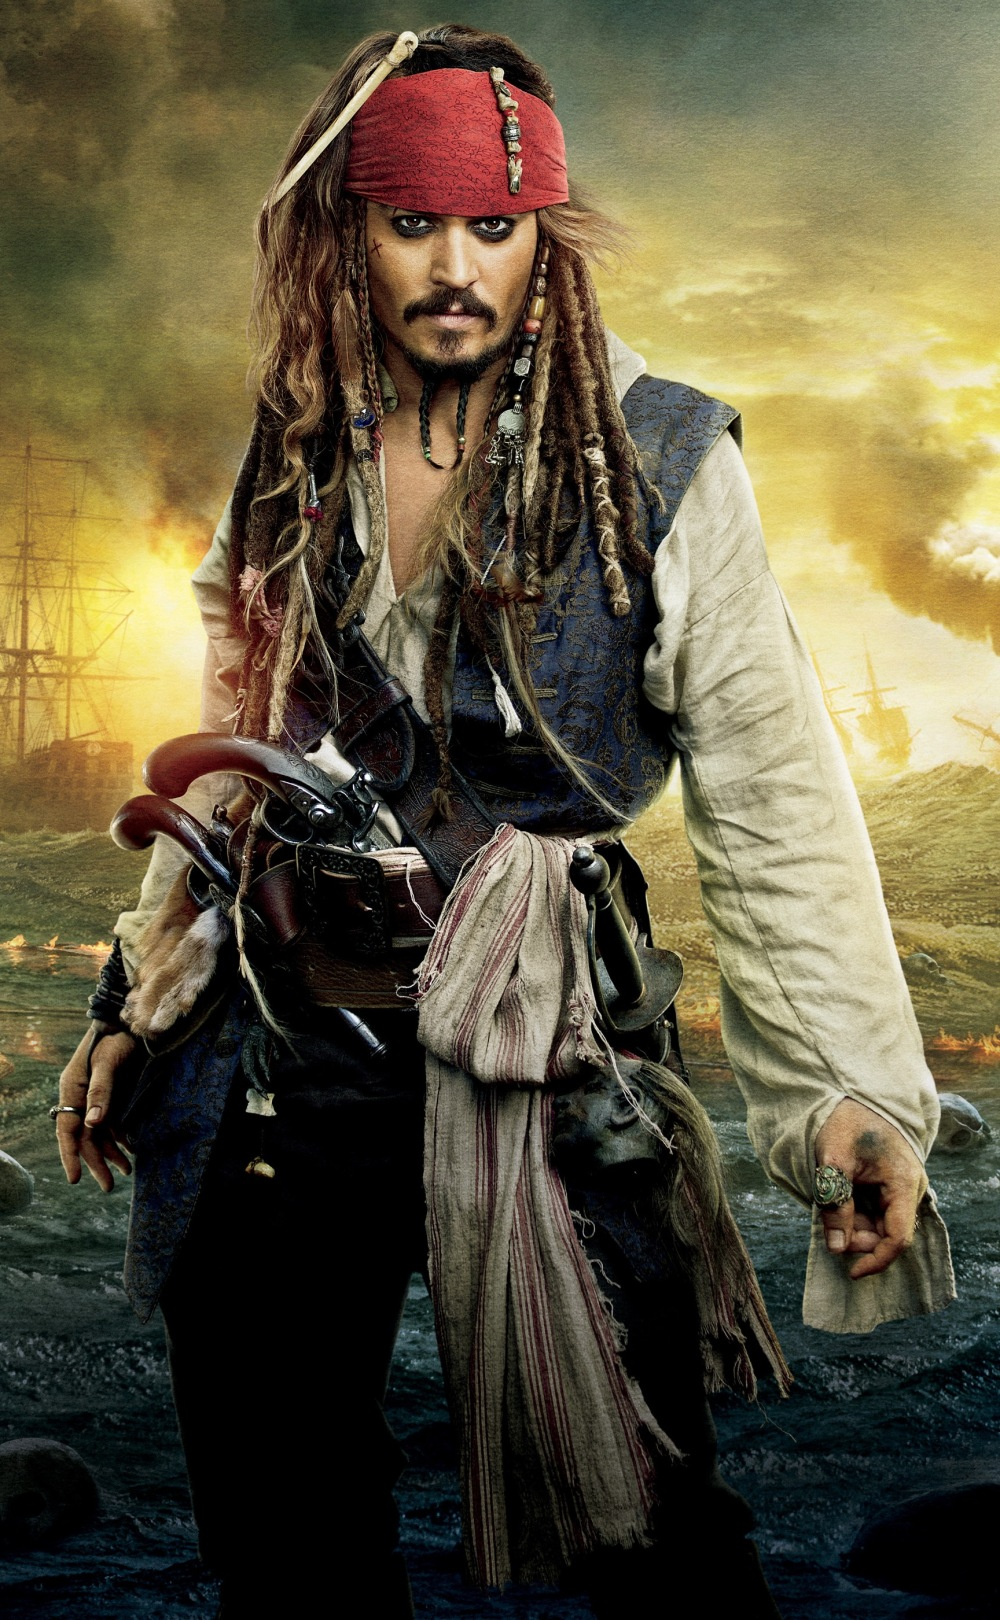 Jack_Sparrow_OST_Textless_Poster